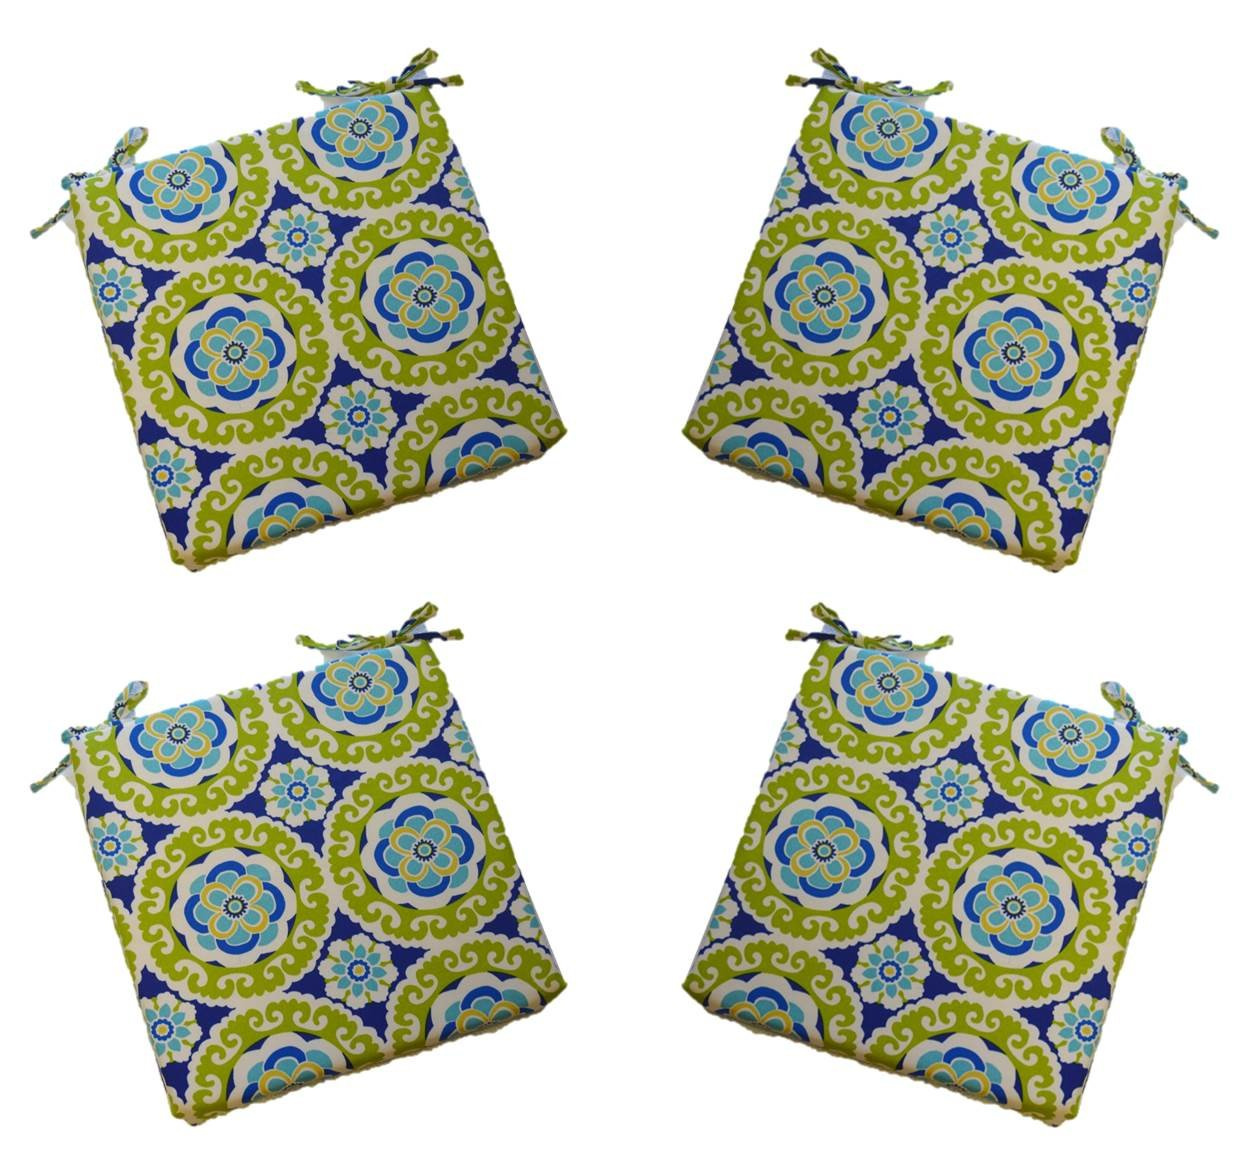 Set of 4 - Universal 2'' Thick Foam Seat Cushion with Ties for Dining / Patio Chair - Blue, Green, Yellow, Turquoise Floral Bohemian Sundial Fabric - Choose Size (17 1/2'' x 17 1/2'')